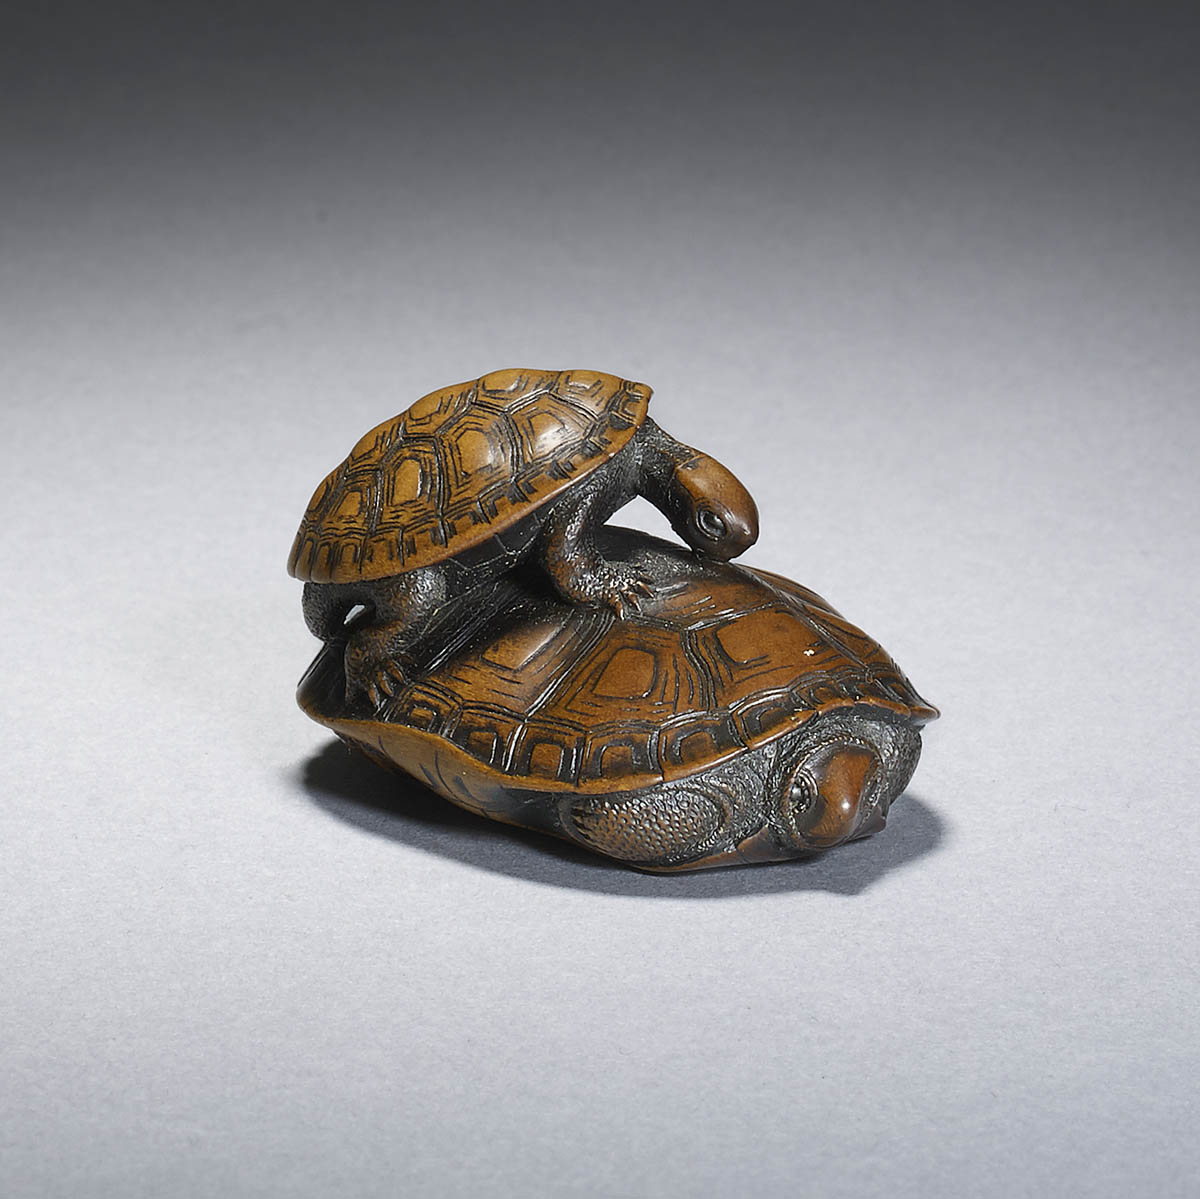 Wood netsuke of two turtles by Kano Tomokazu